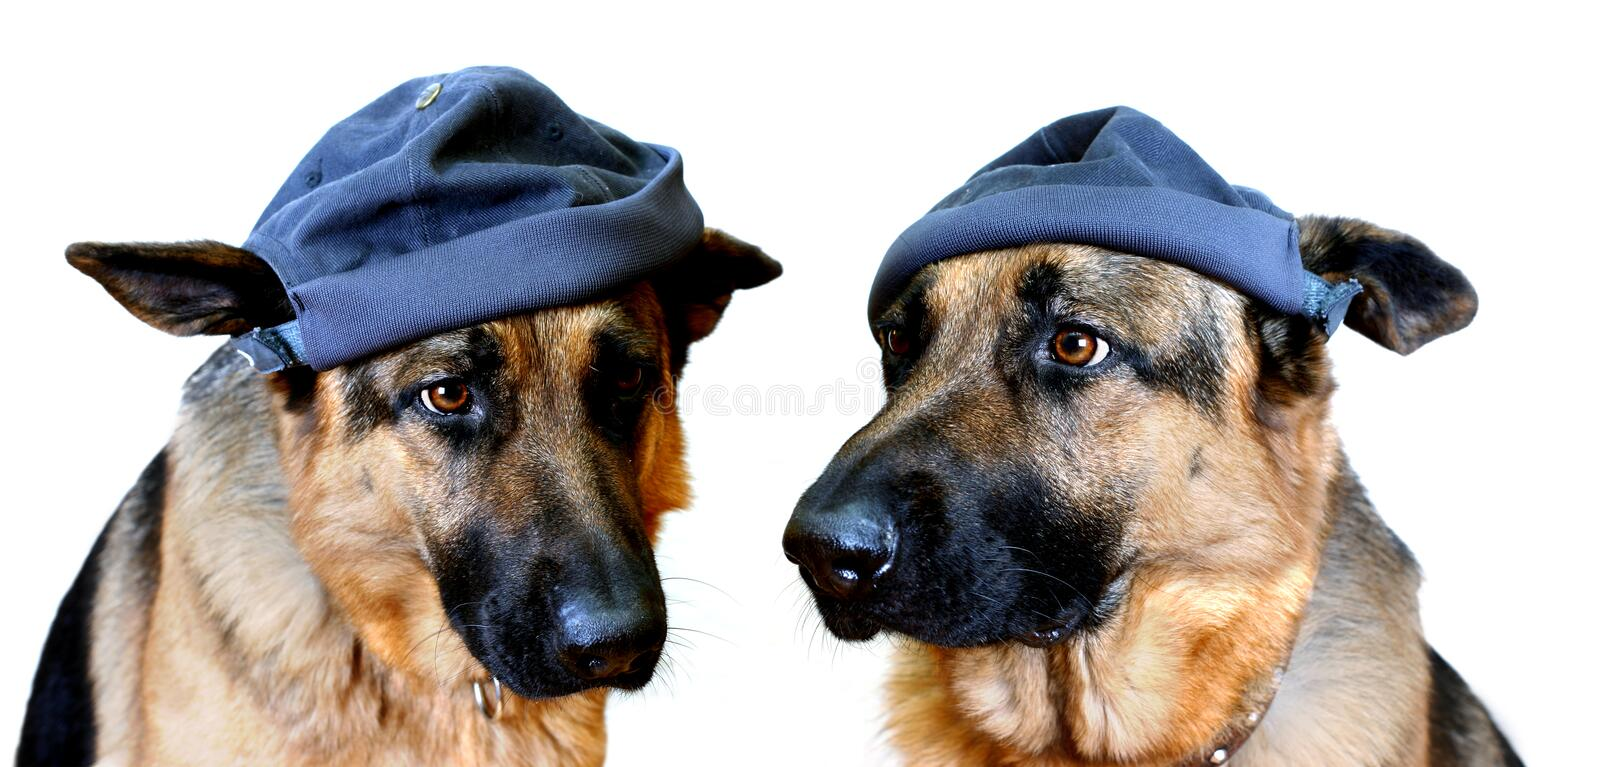 Dogs In Caps. Two dogs (German Shepherds) with caps on their heads. Main focus is on eyes